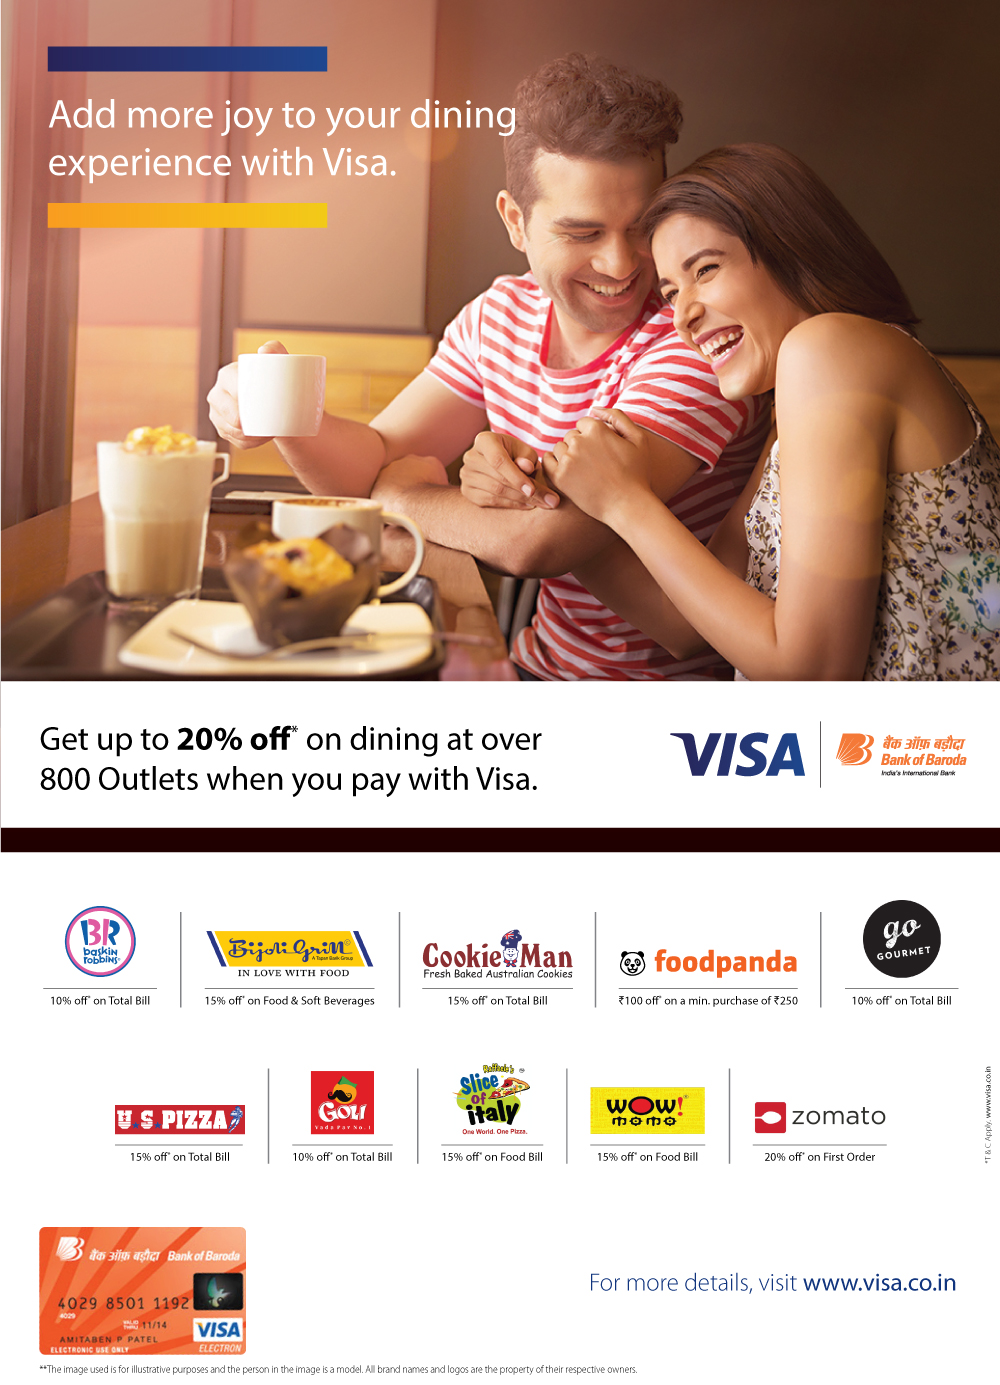 Launch of Dining offer